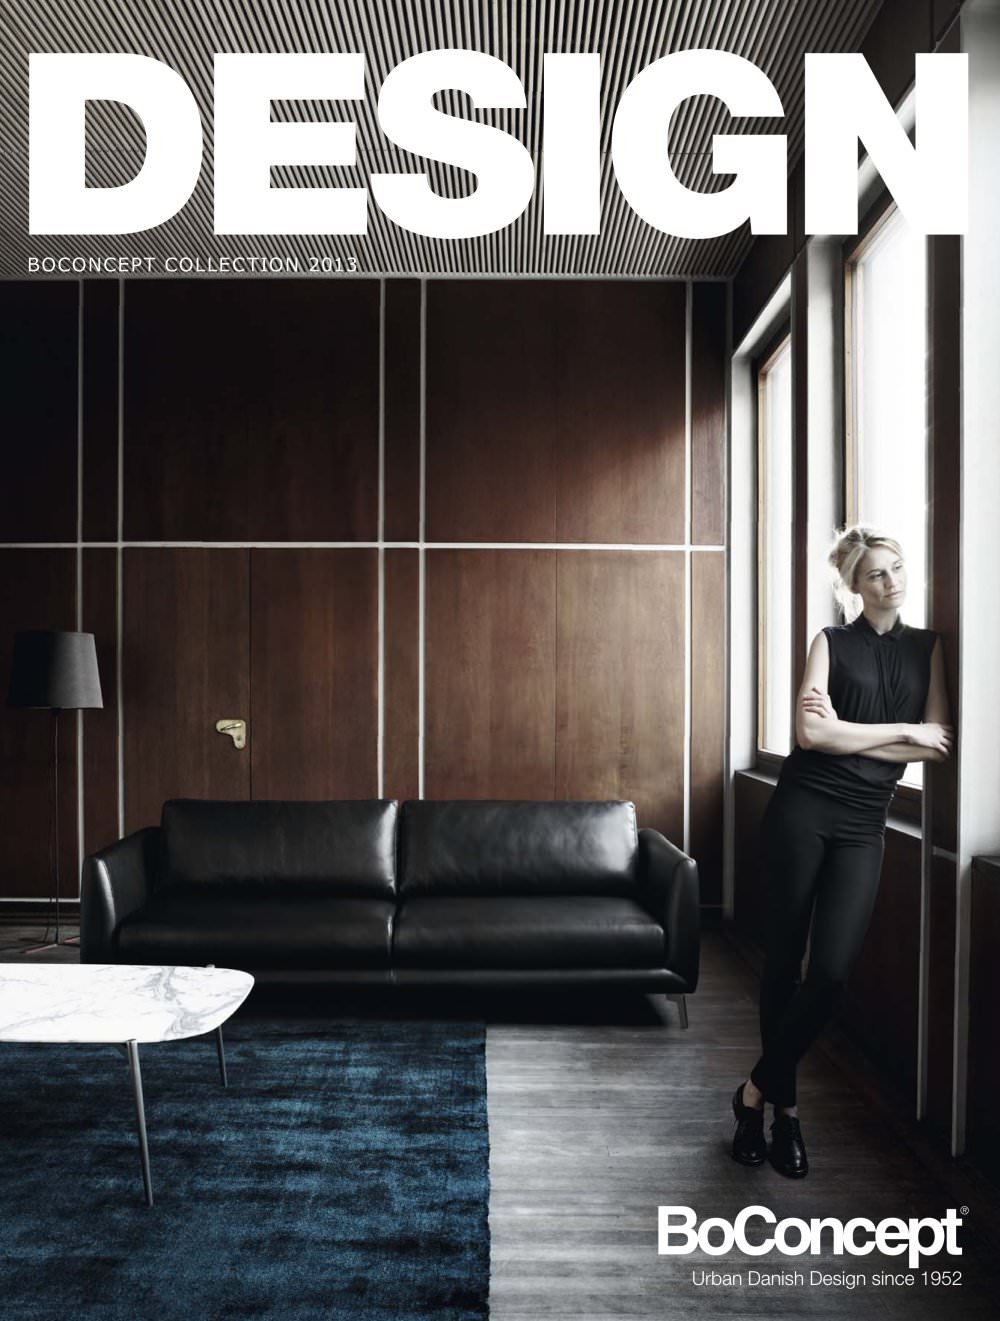 Design Boconcept Collection 2013 - 1 / 164 Pages